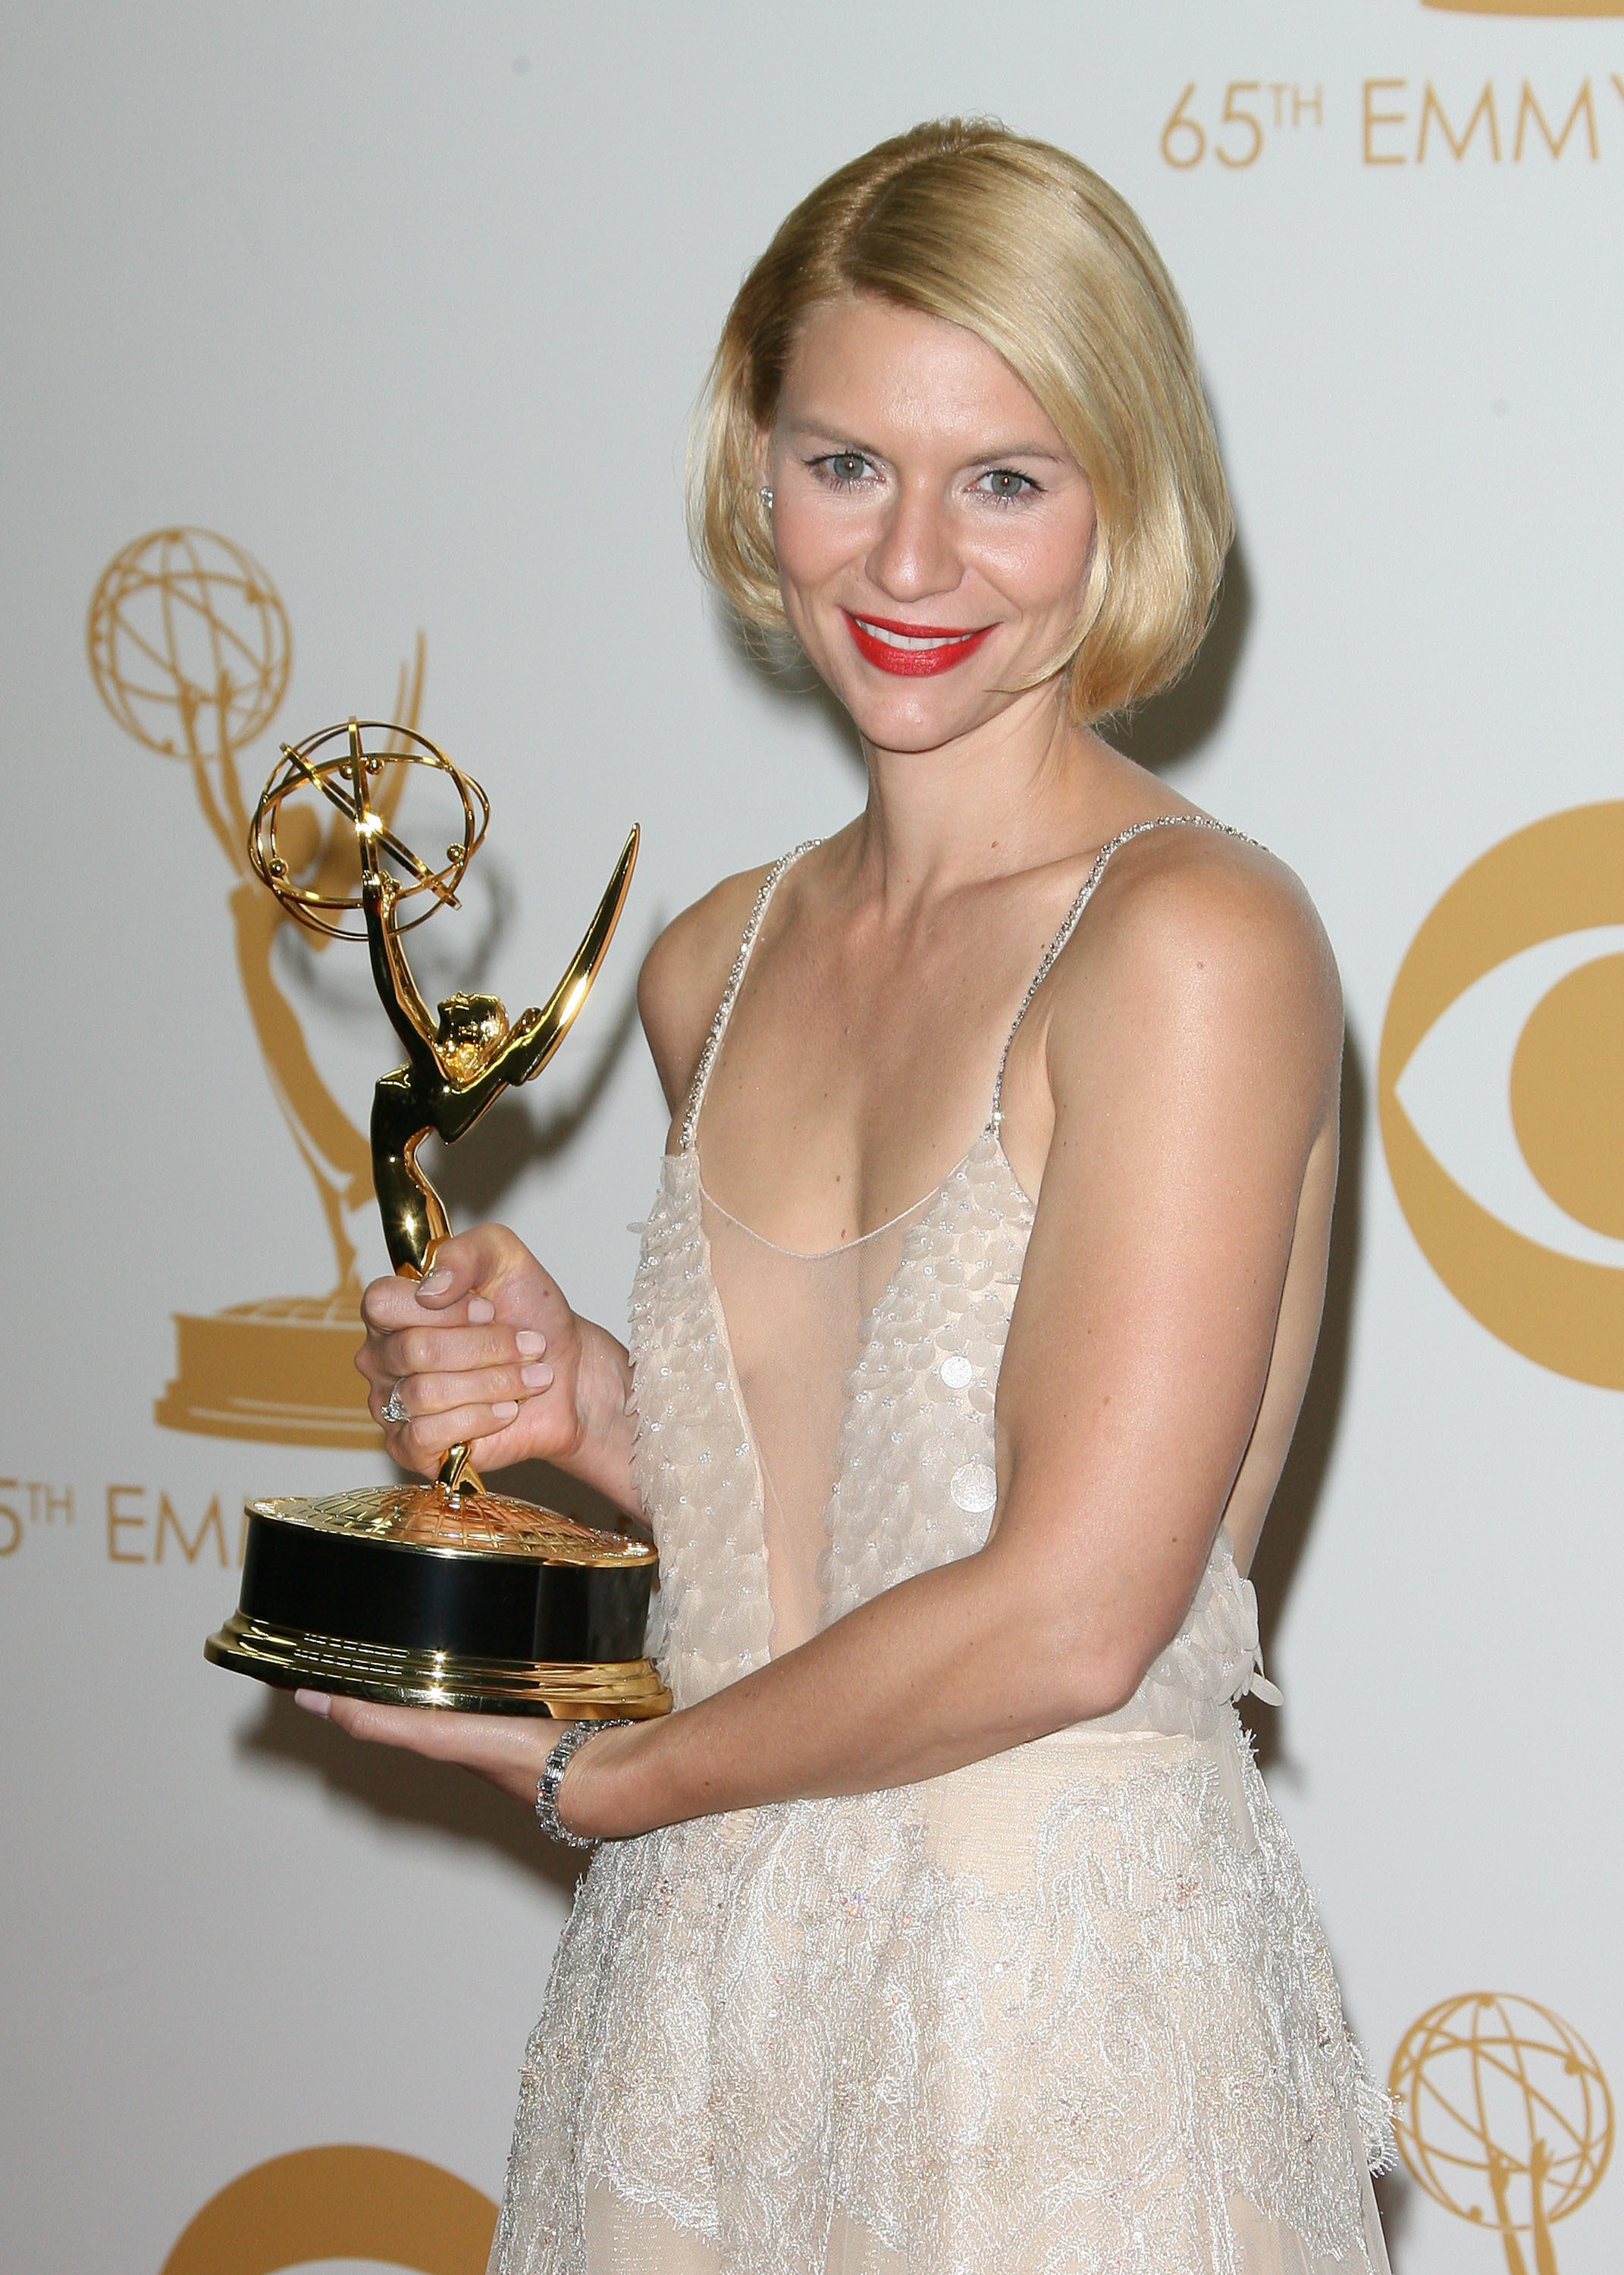 emmy awards claire danes cyrus